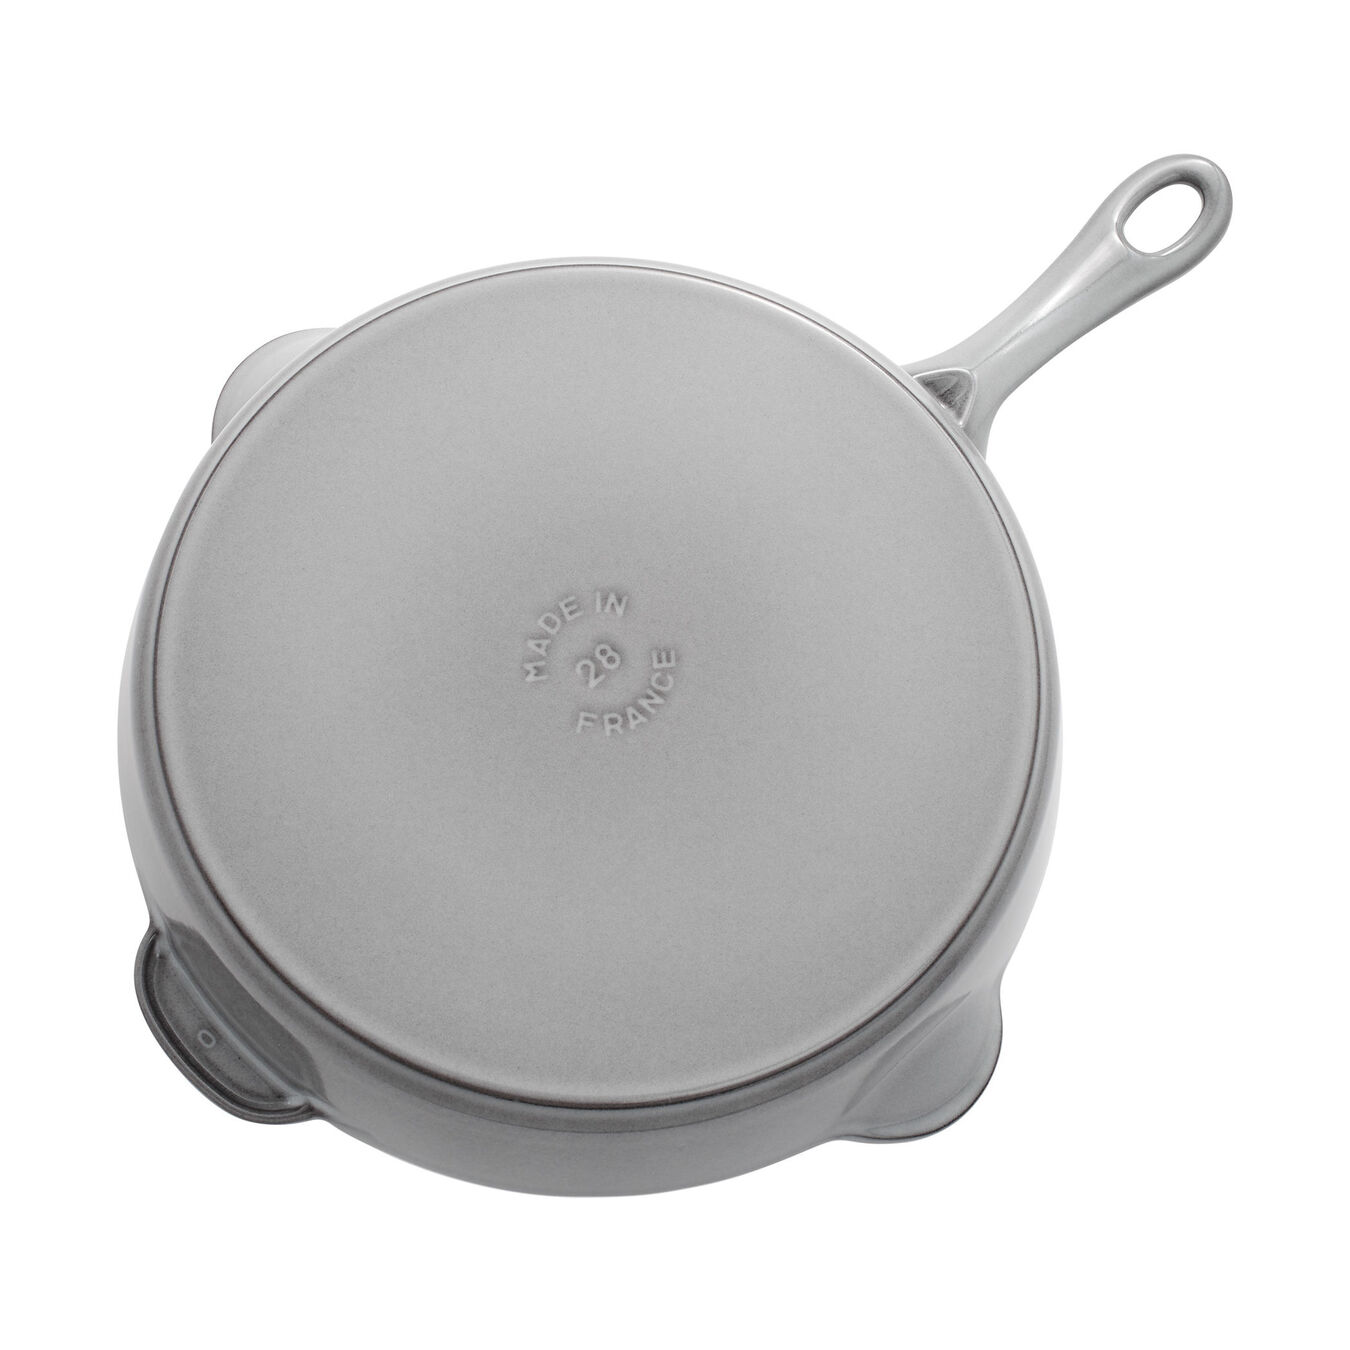 11-inch, Traditional Deep Skillet, graphite grey,,large 4